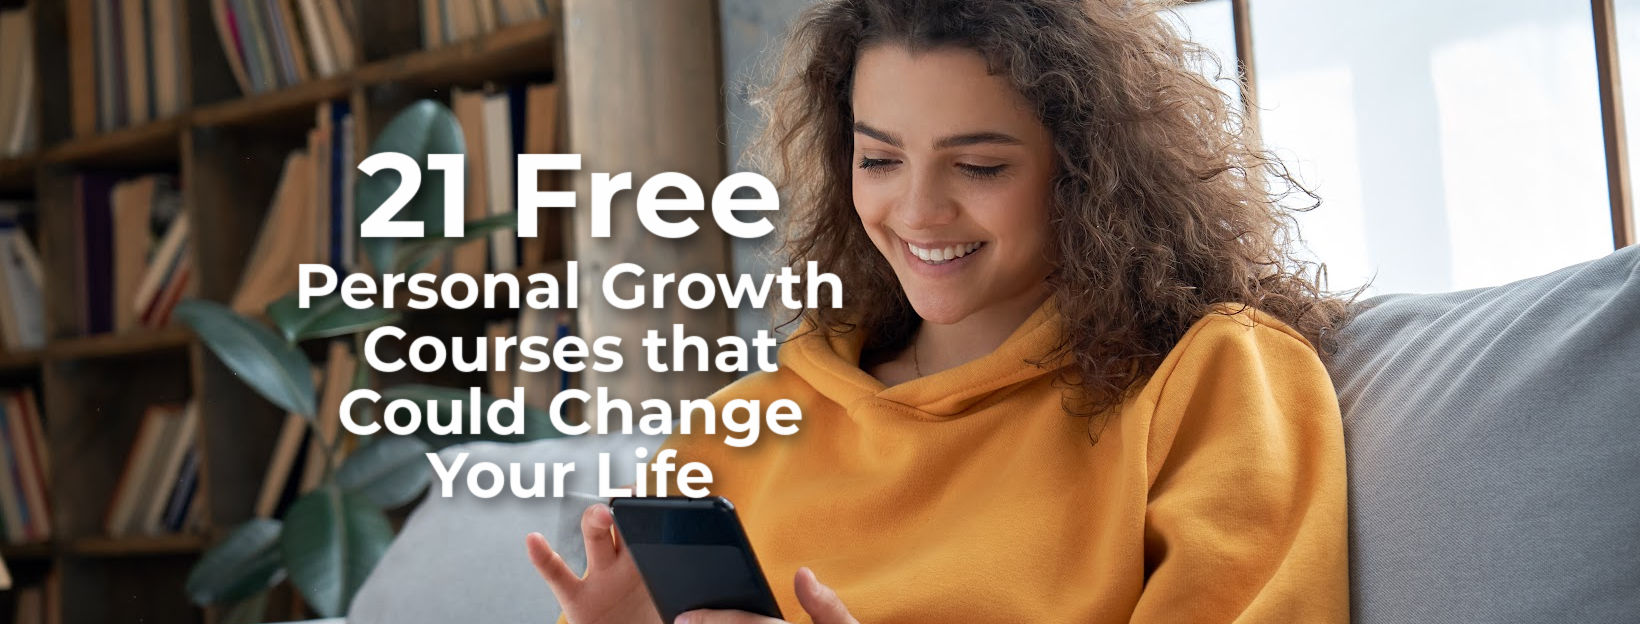 21 free personal growth courses for self improvement